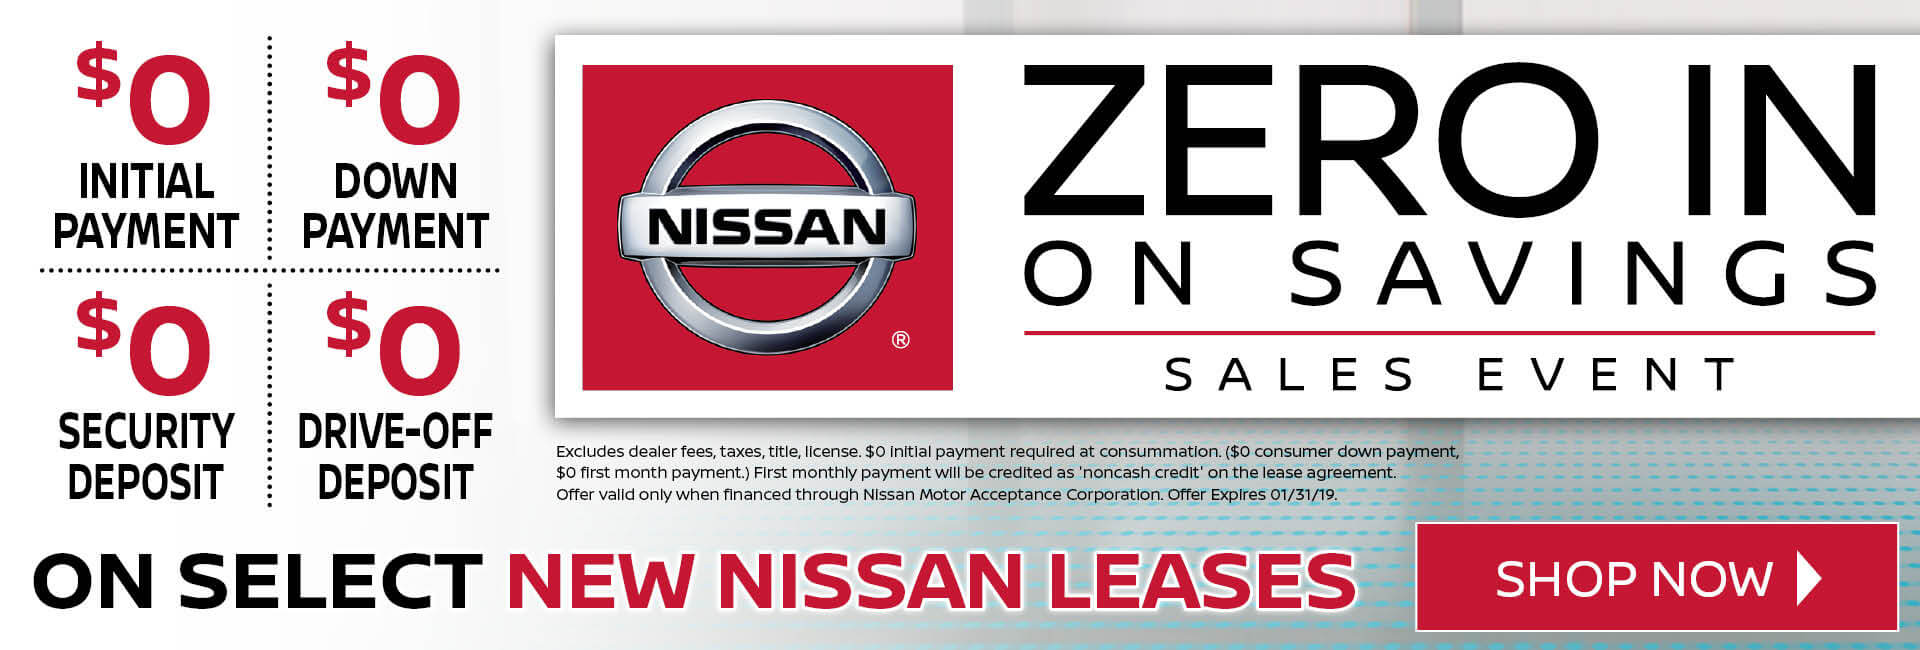 Zero in On Savings - Leases